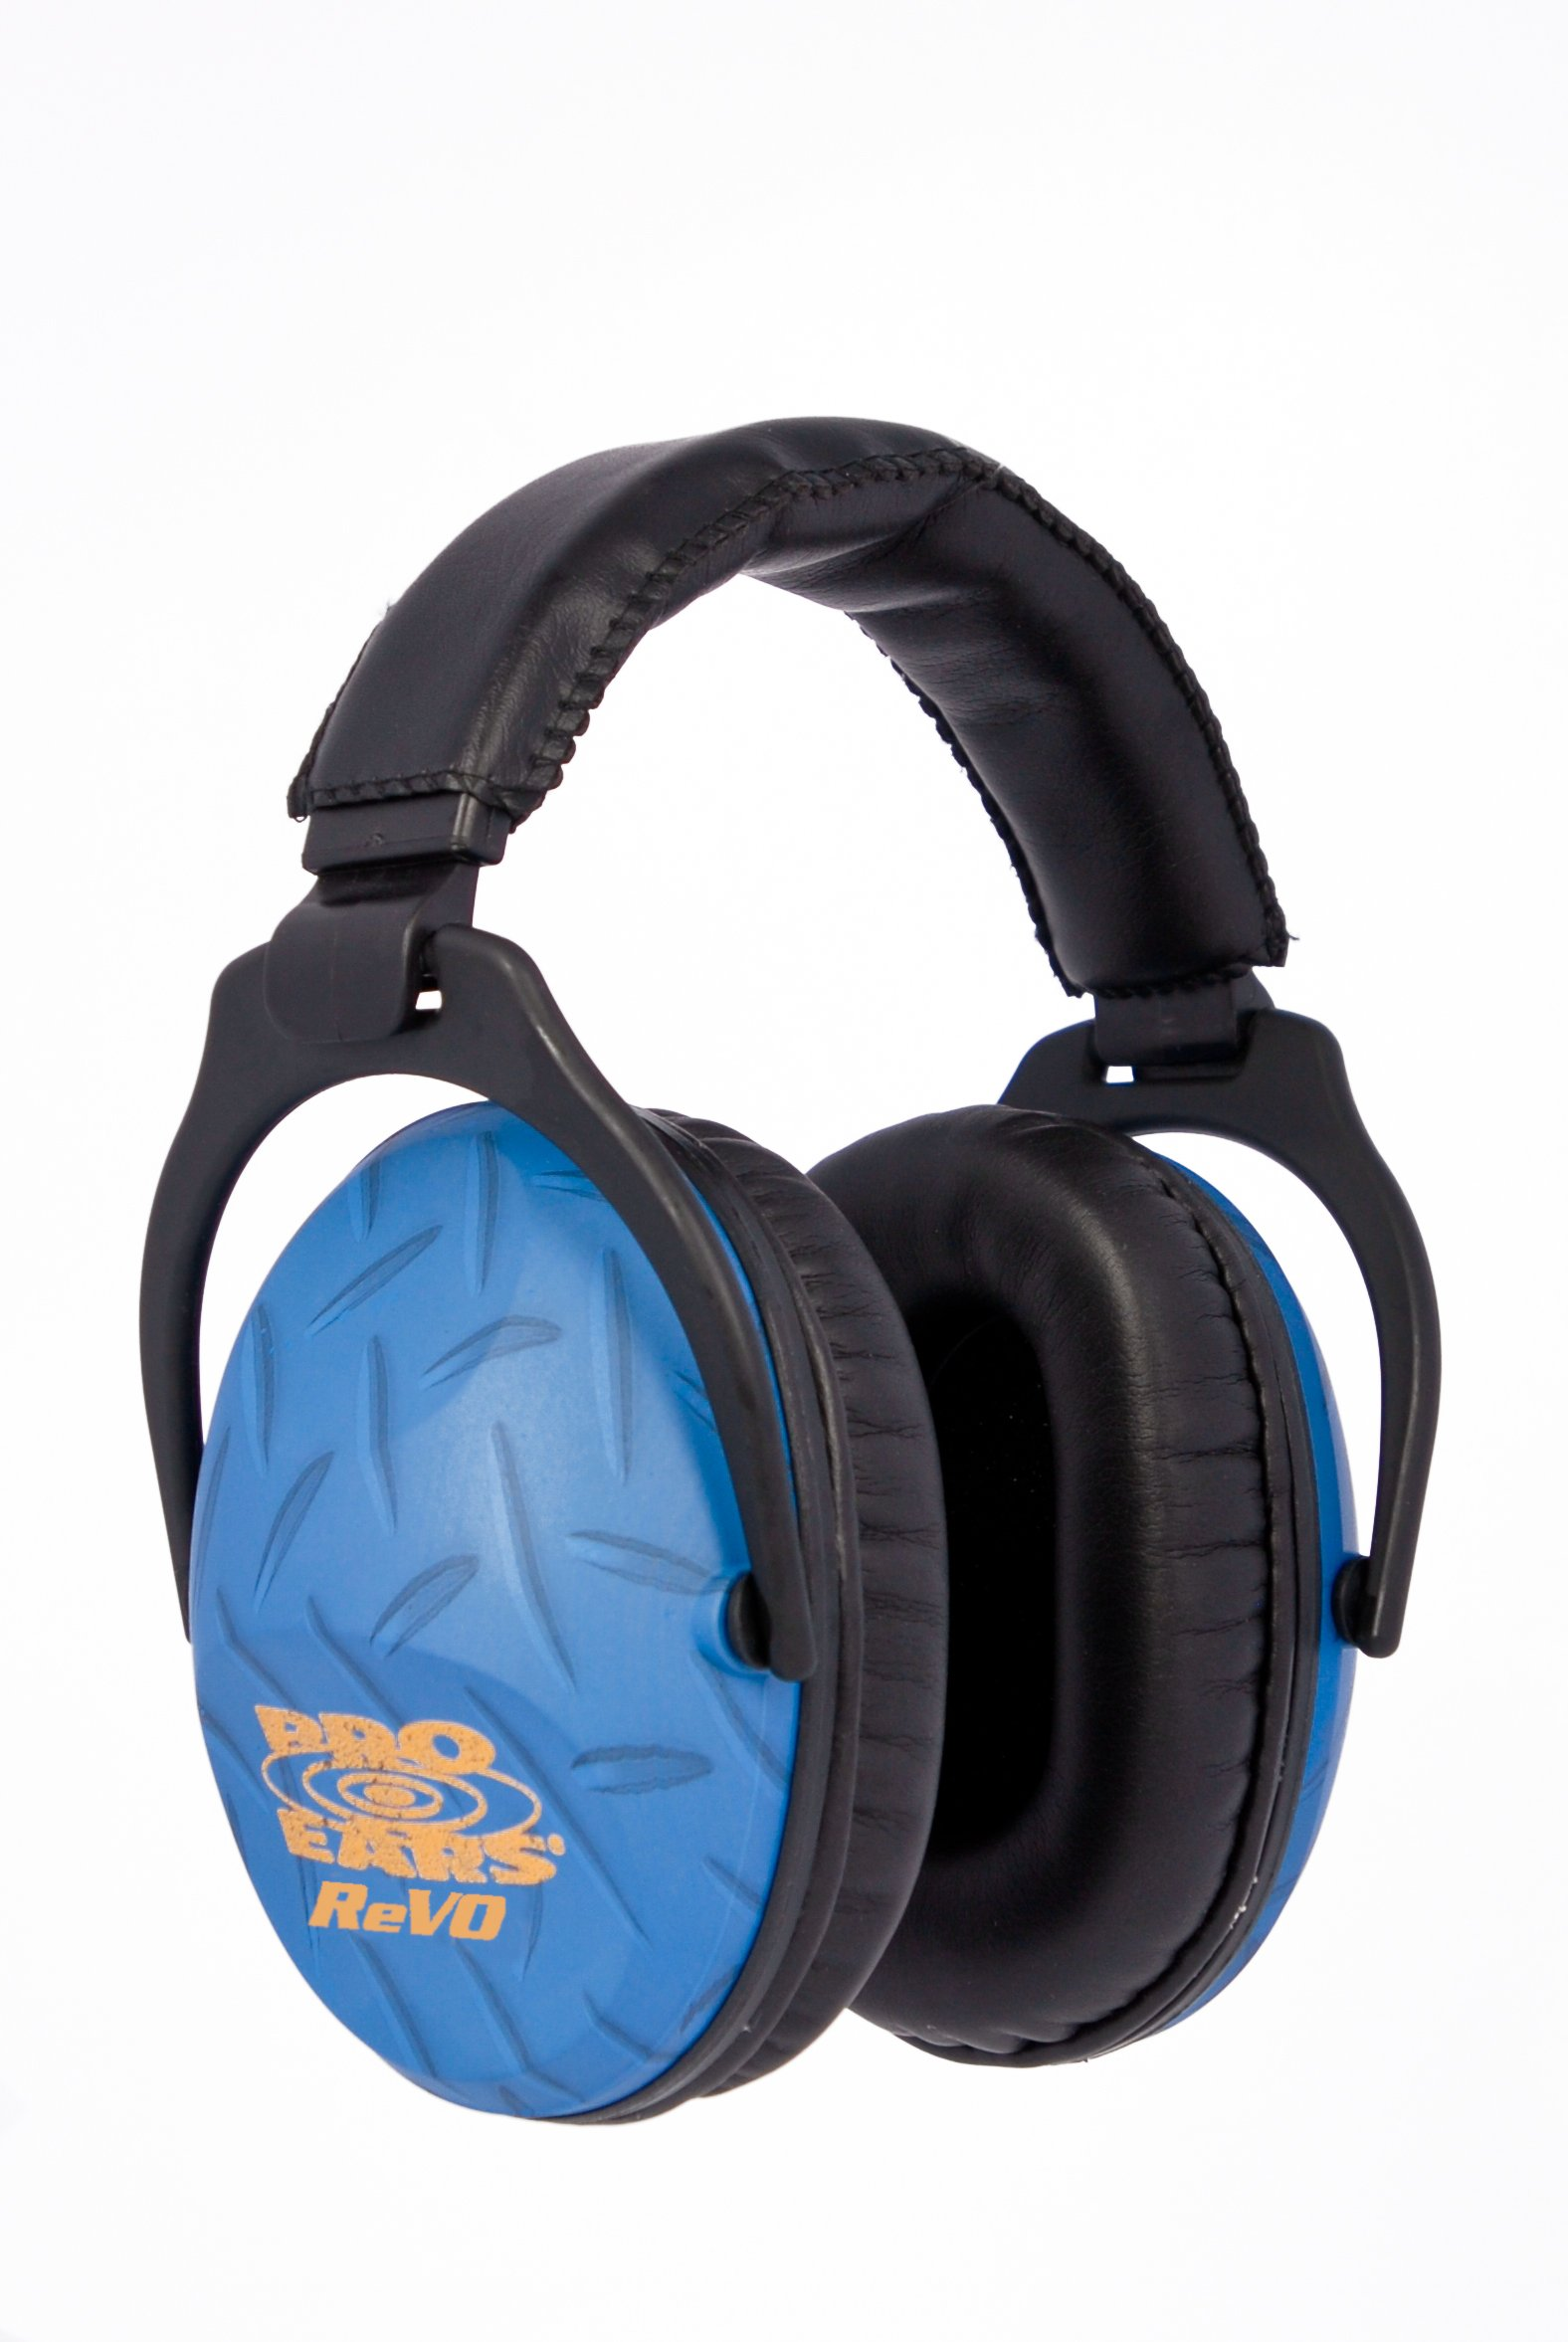 Pro Ears - ReVO - Hearing Protection - NRR 25 - Youth and Women Ear Muffs - Blue Diamond Plate by Pro Ears (Image #2)